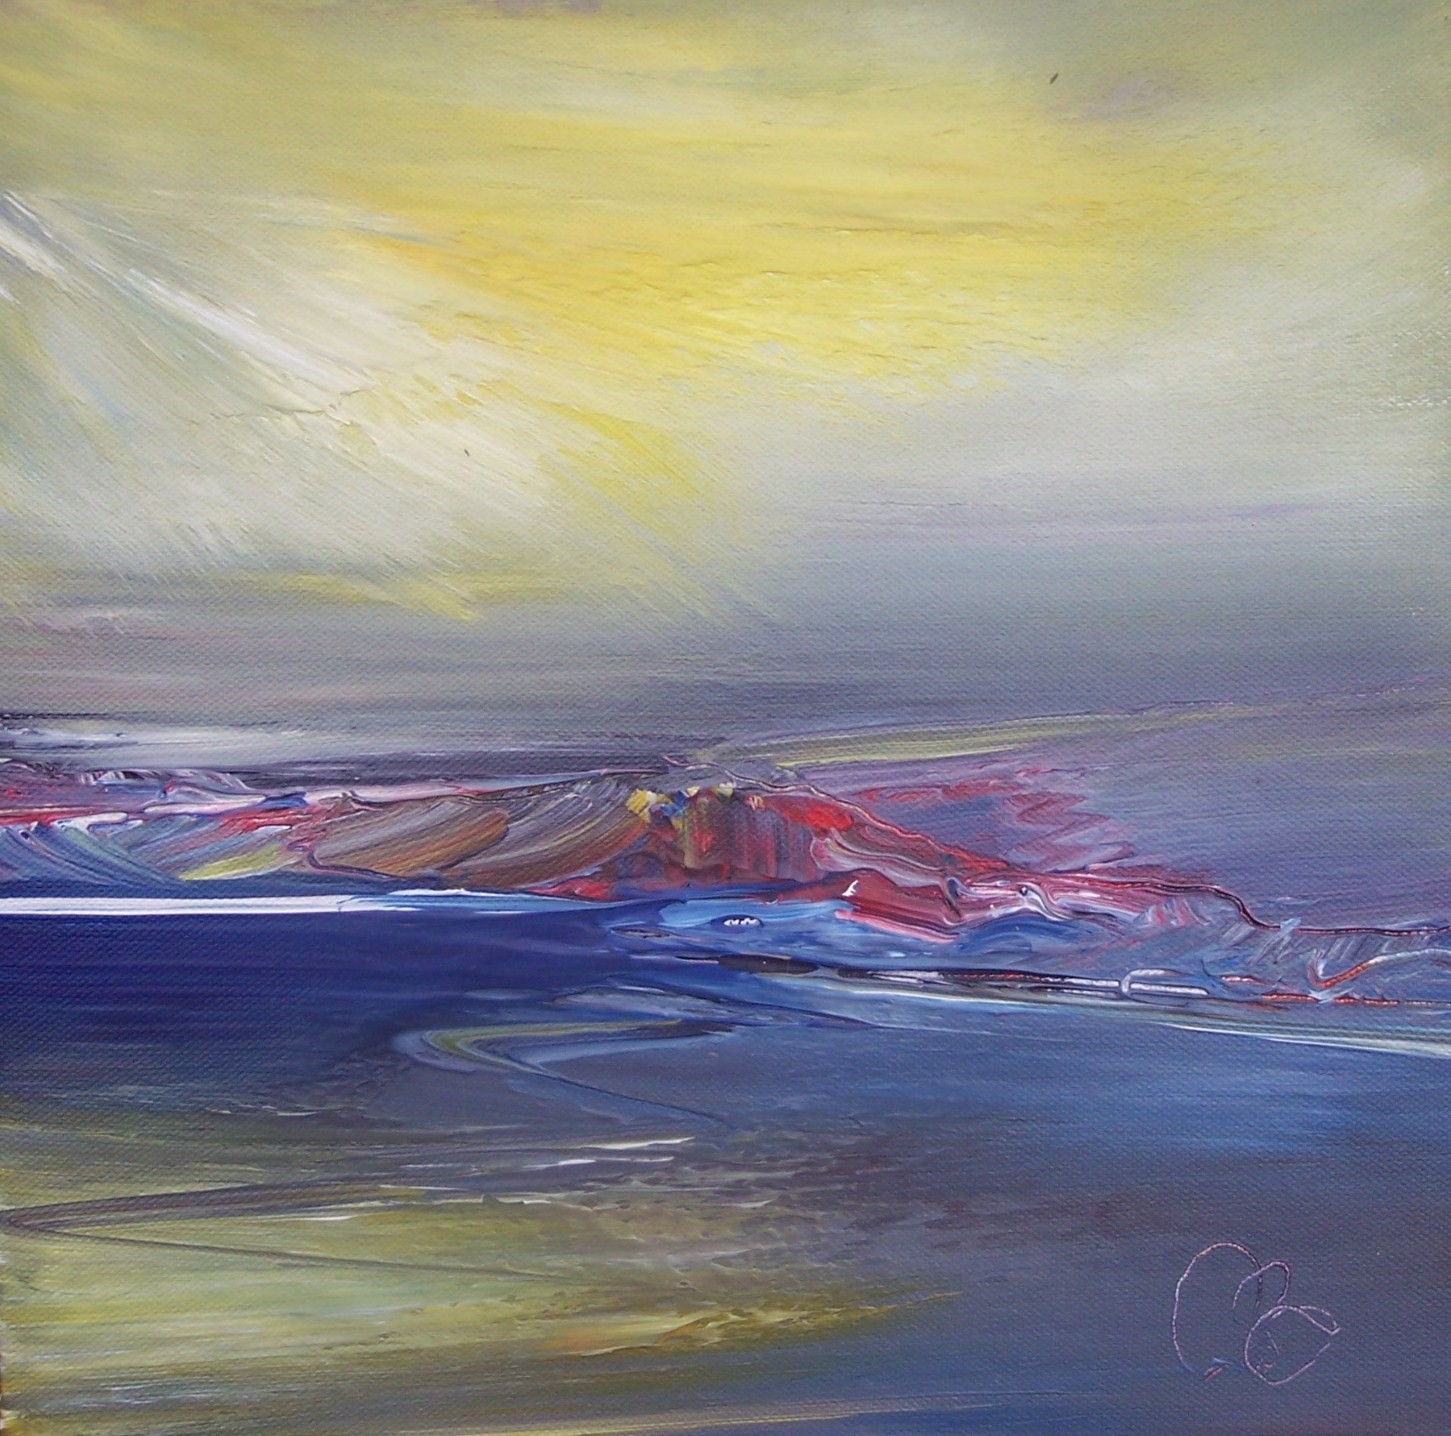 'across the firth' by artist Rosanne Barr